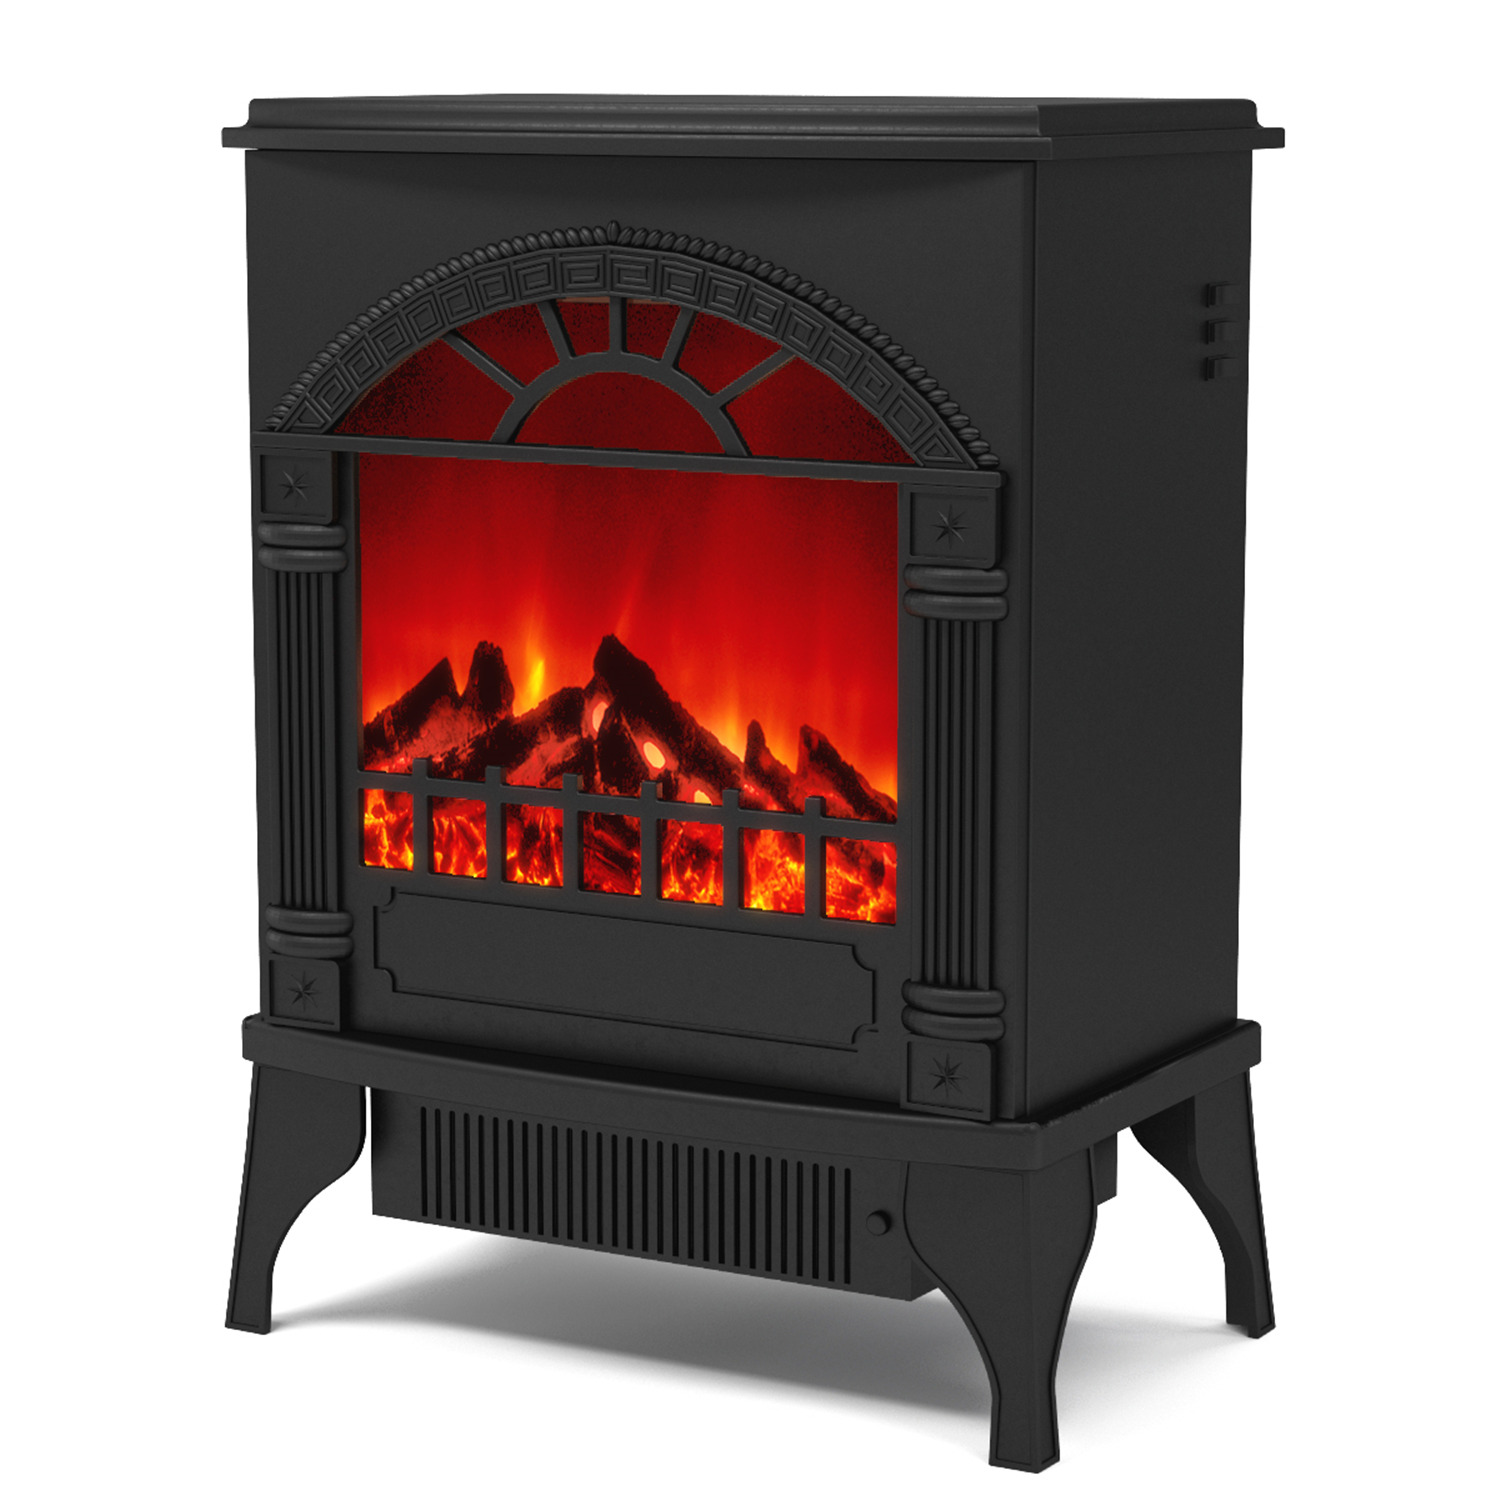 gibson living apollo electric fireplace free standing portable space heater stove better than wood fireplaces gas logs wall mounted log sets gas